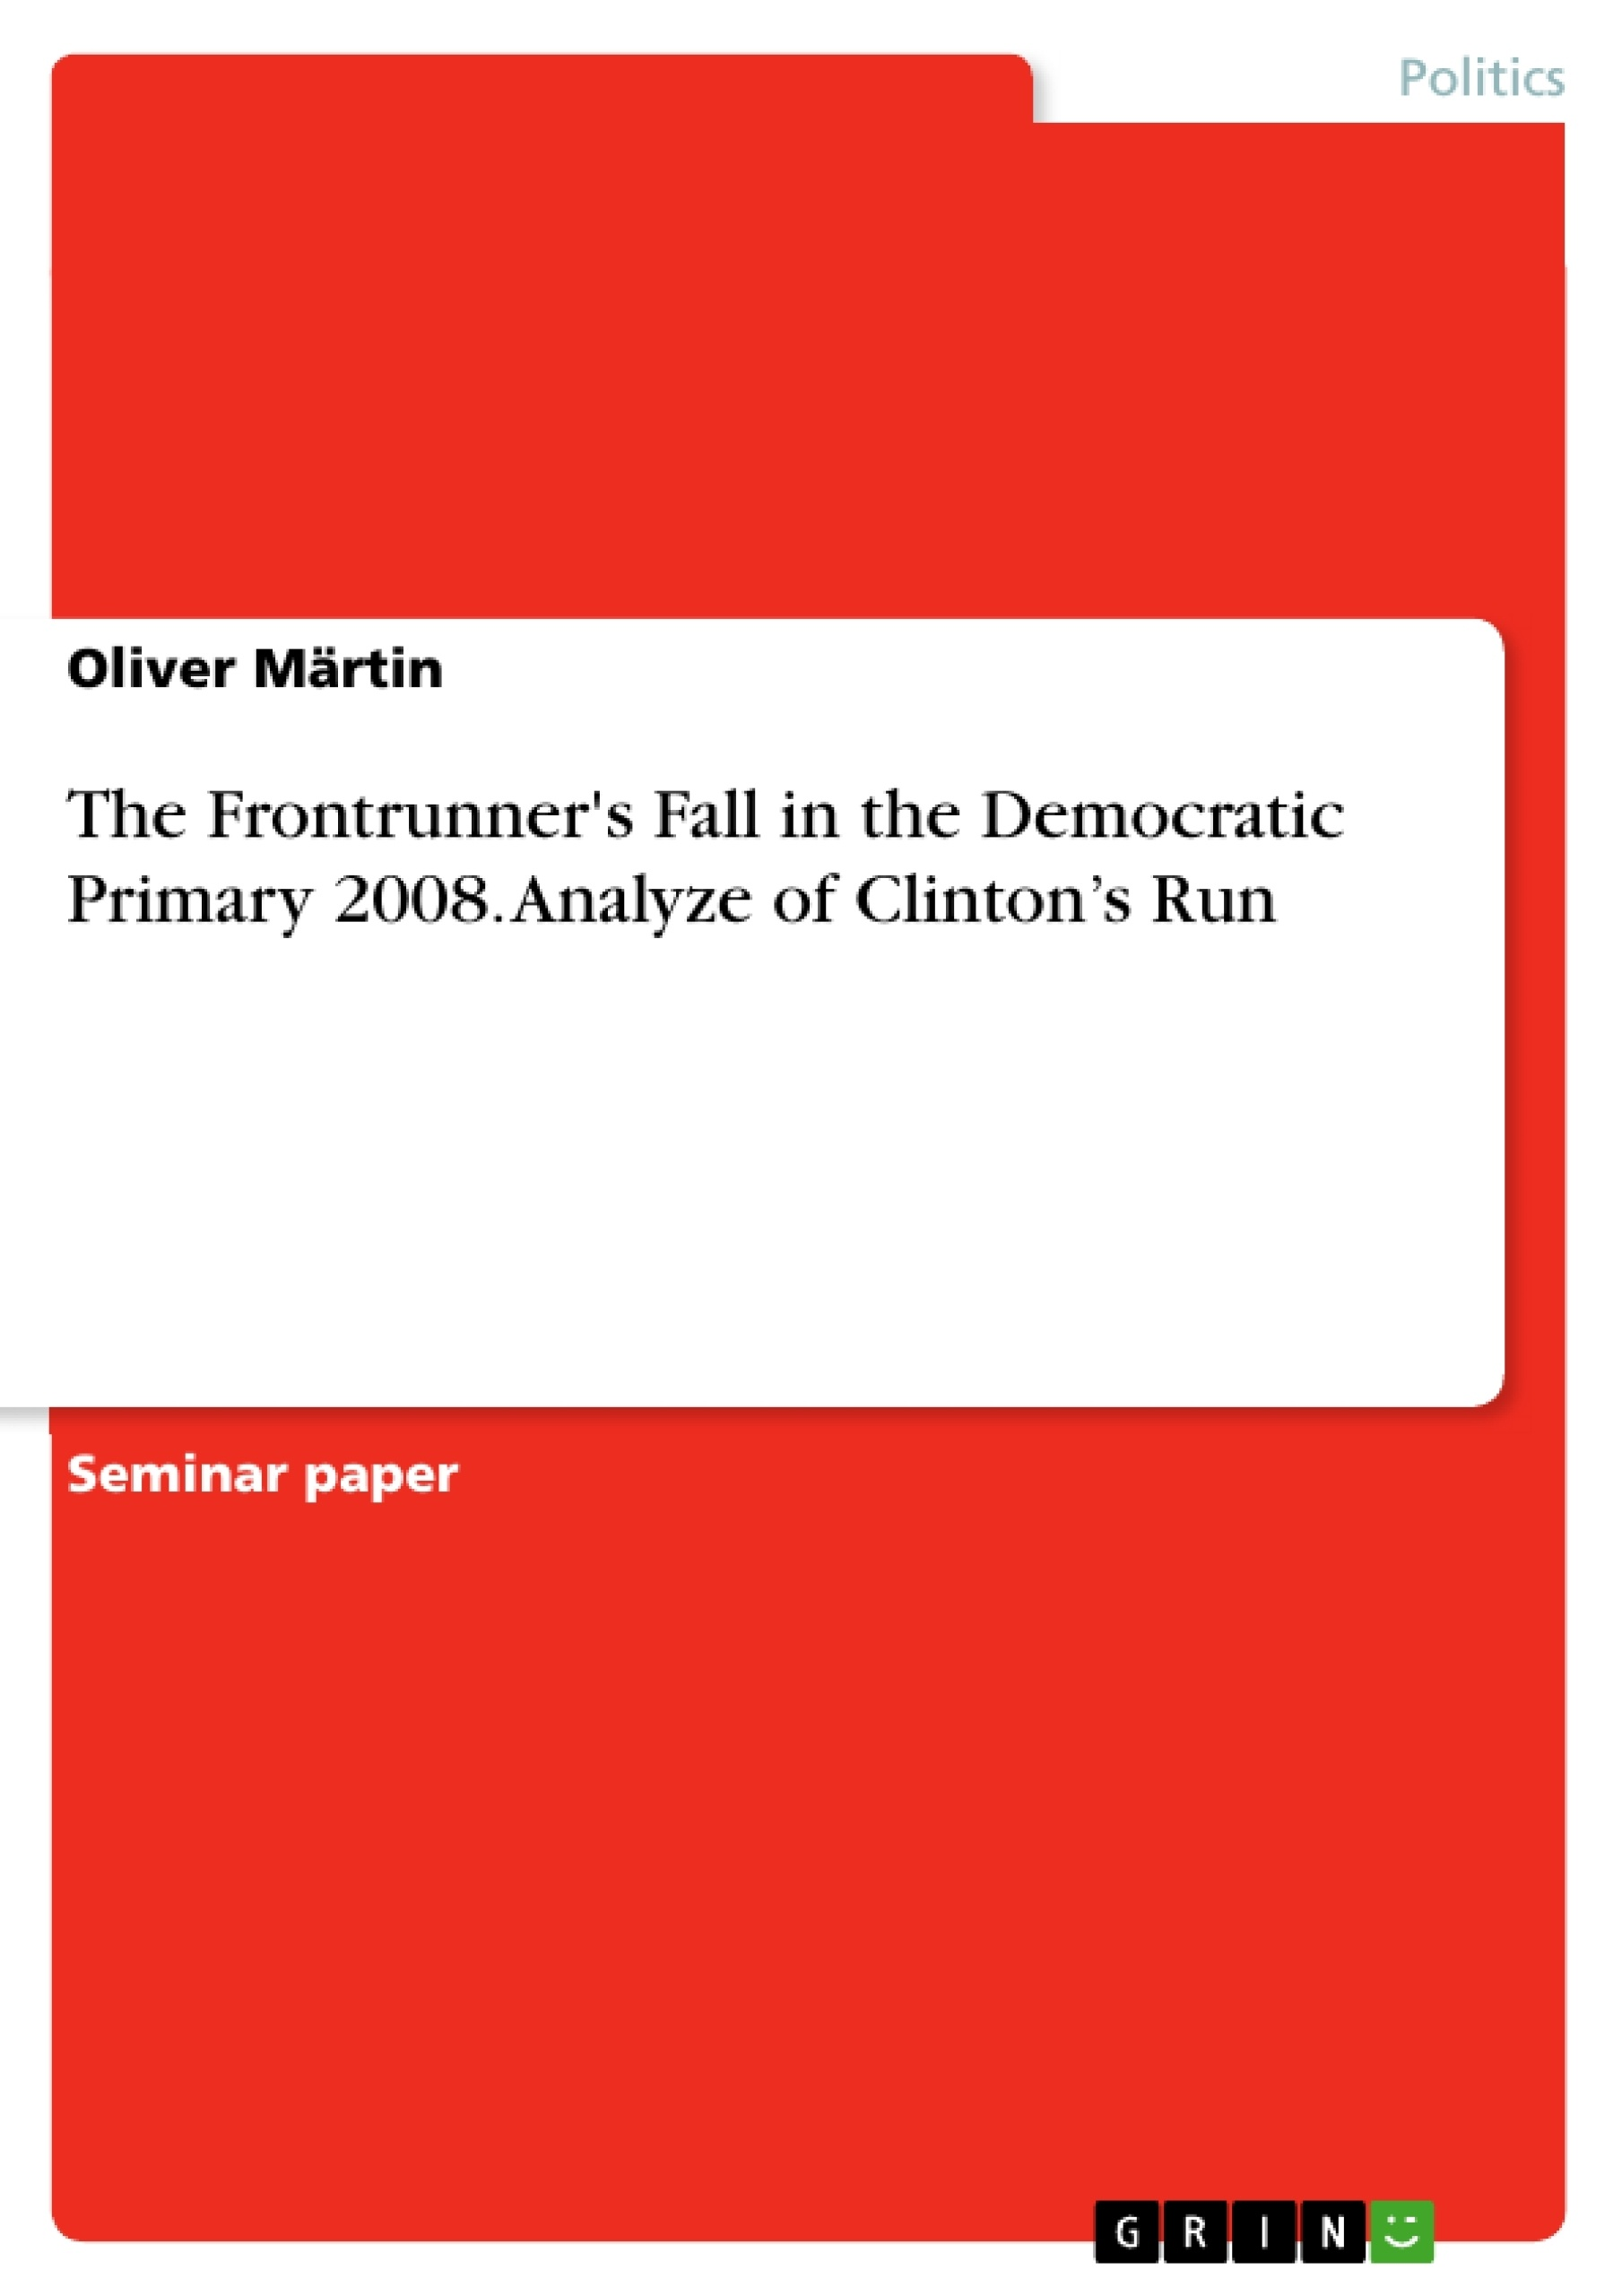 Title: The Frontrunner's Fall in the Democratic Primary 2008. Analyze of Clinton's Run